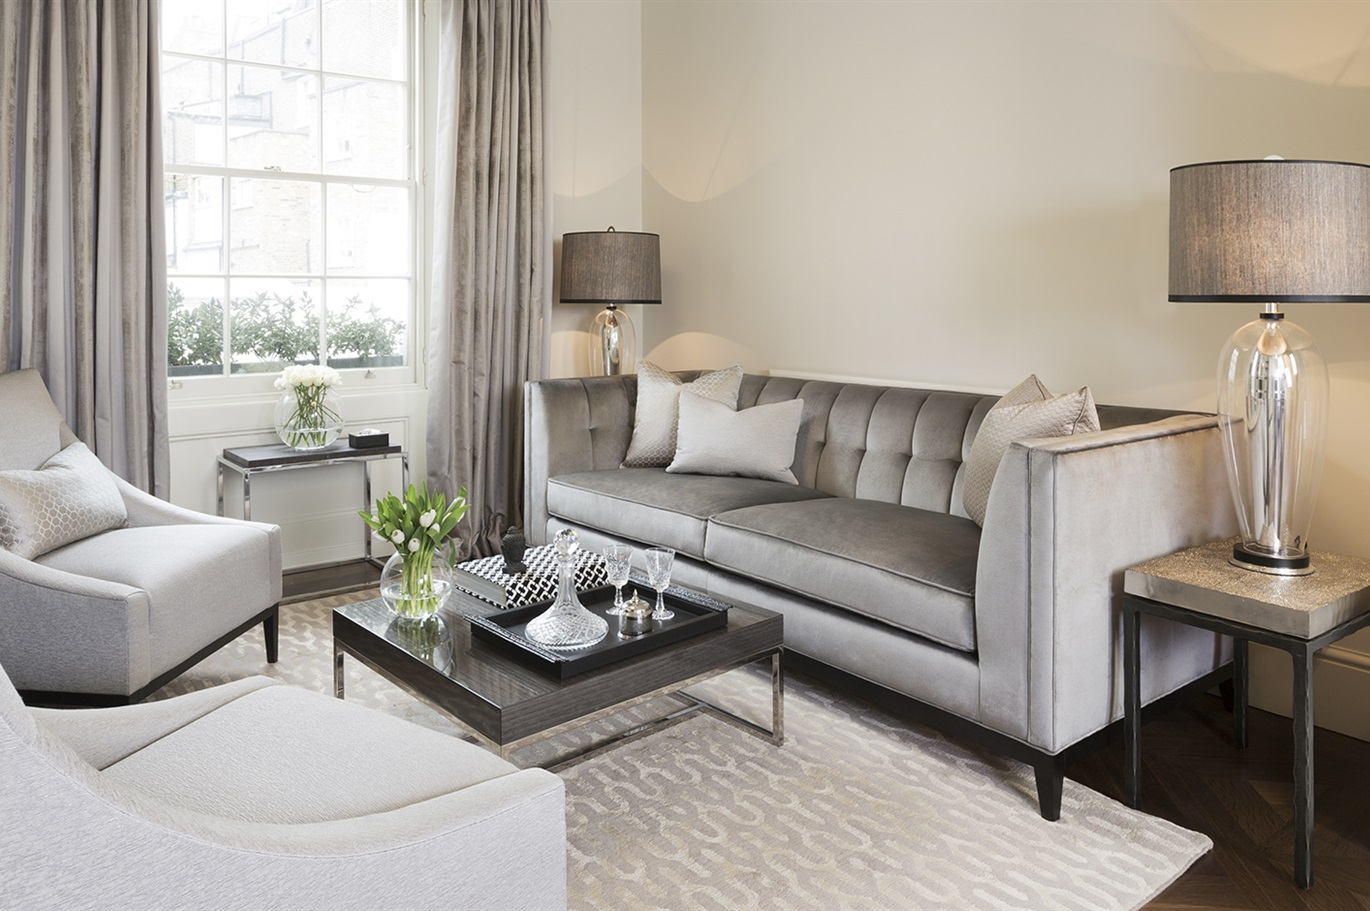 the sofa and chair company bed mattresses uk chelsea residence